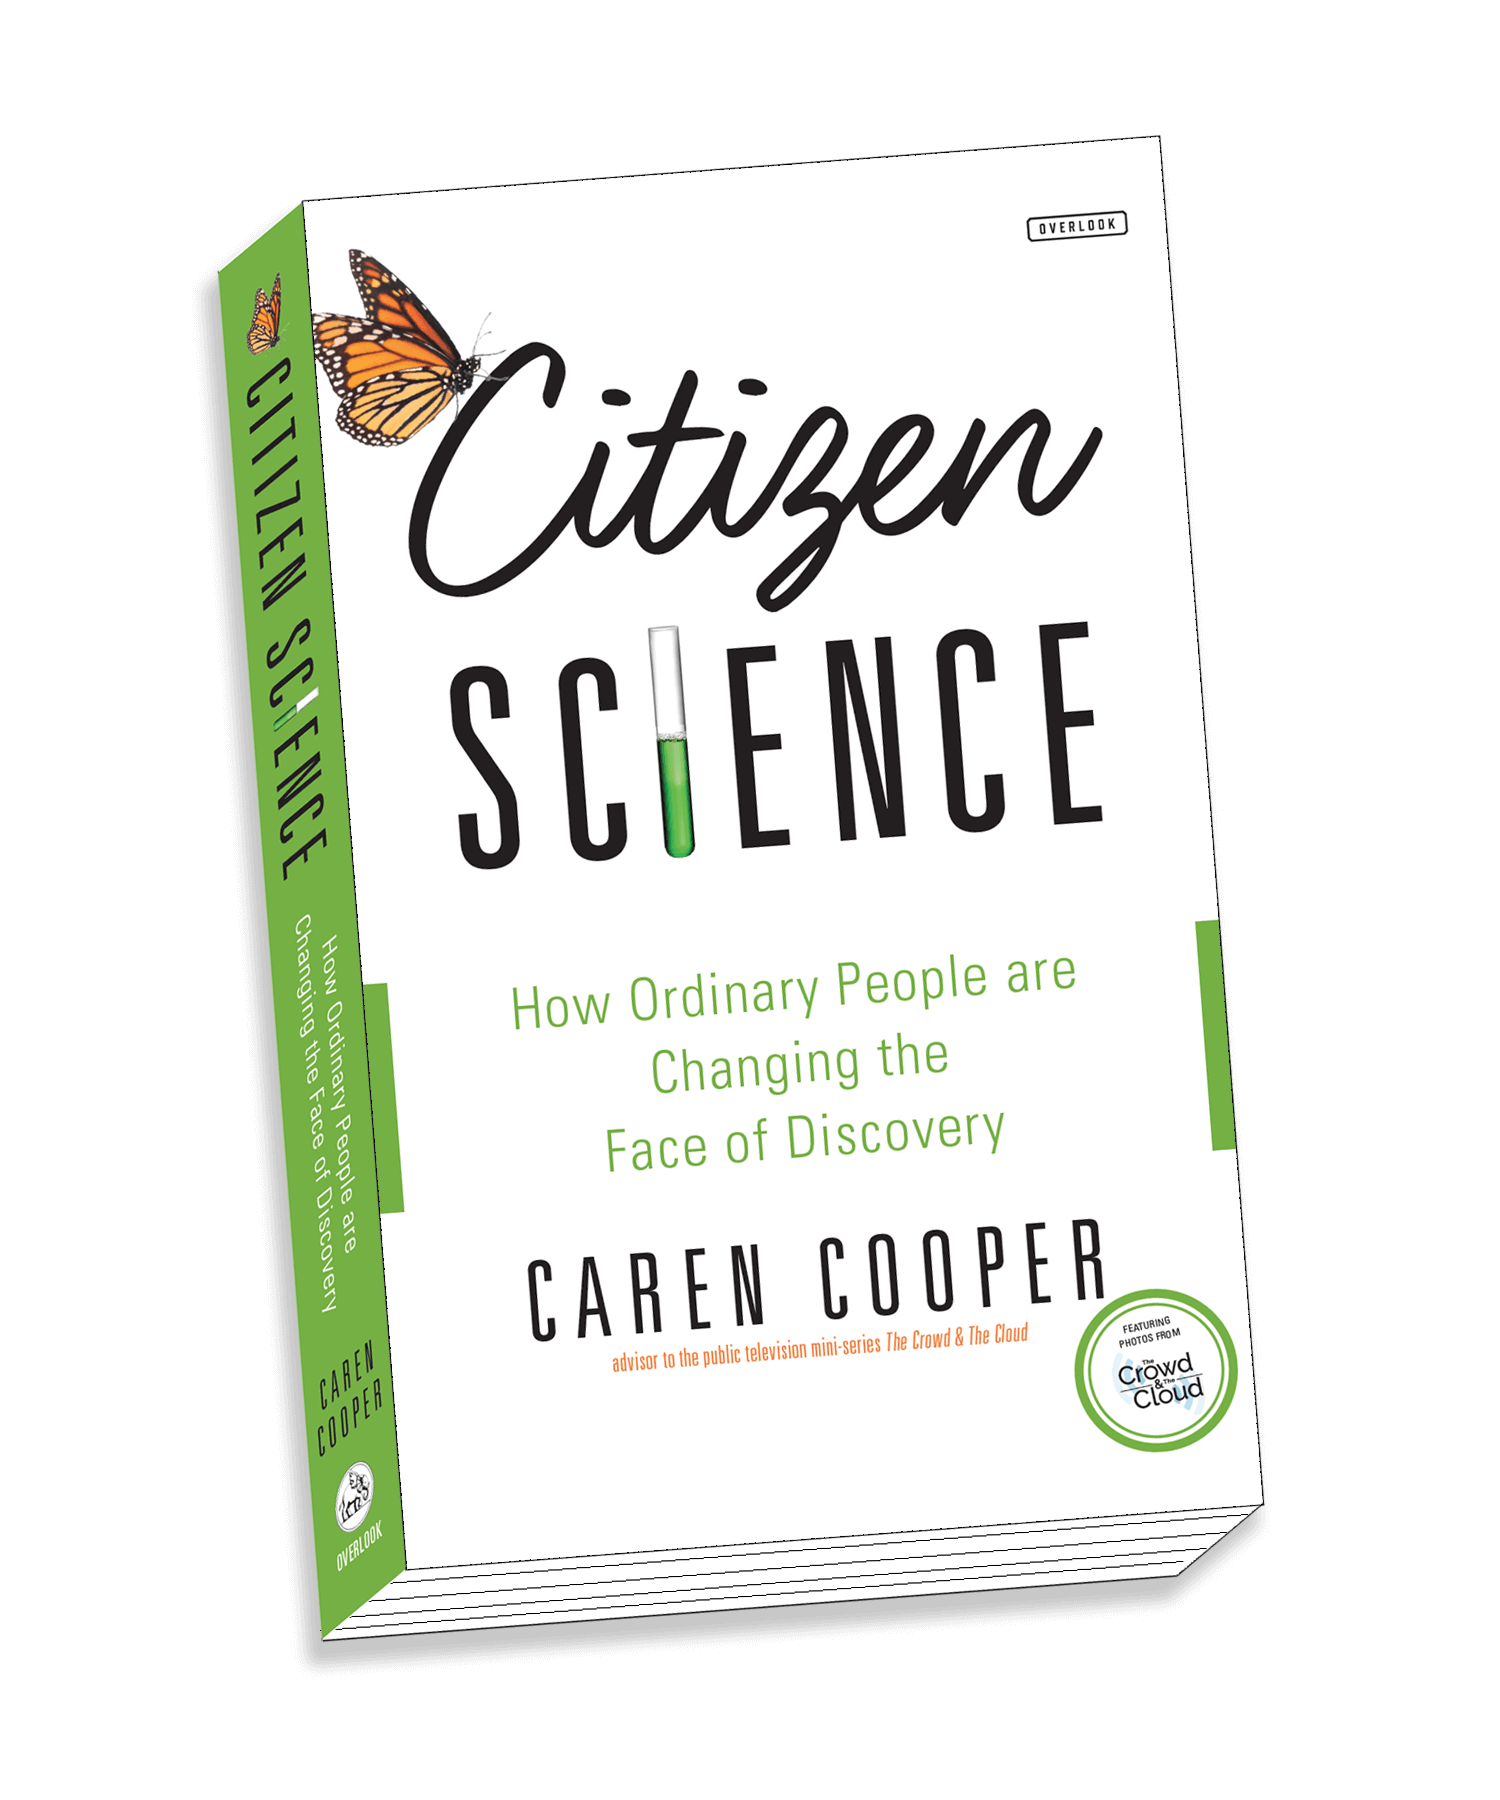 Book Image: Citizen Science by Caren Cooper